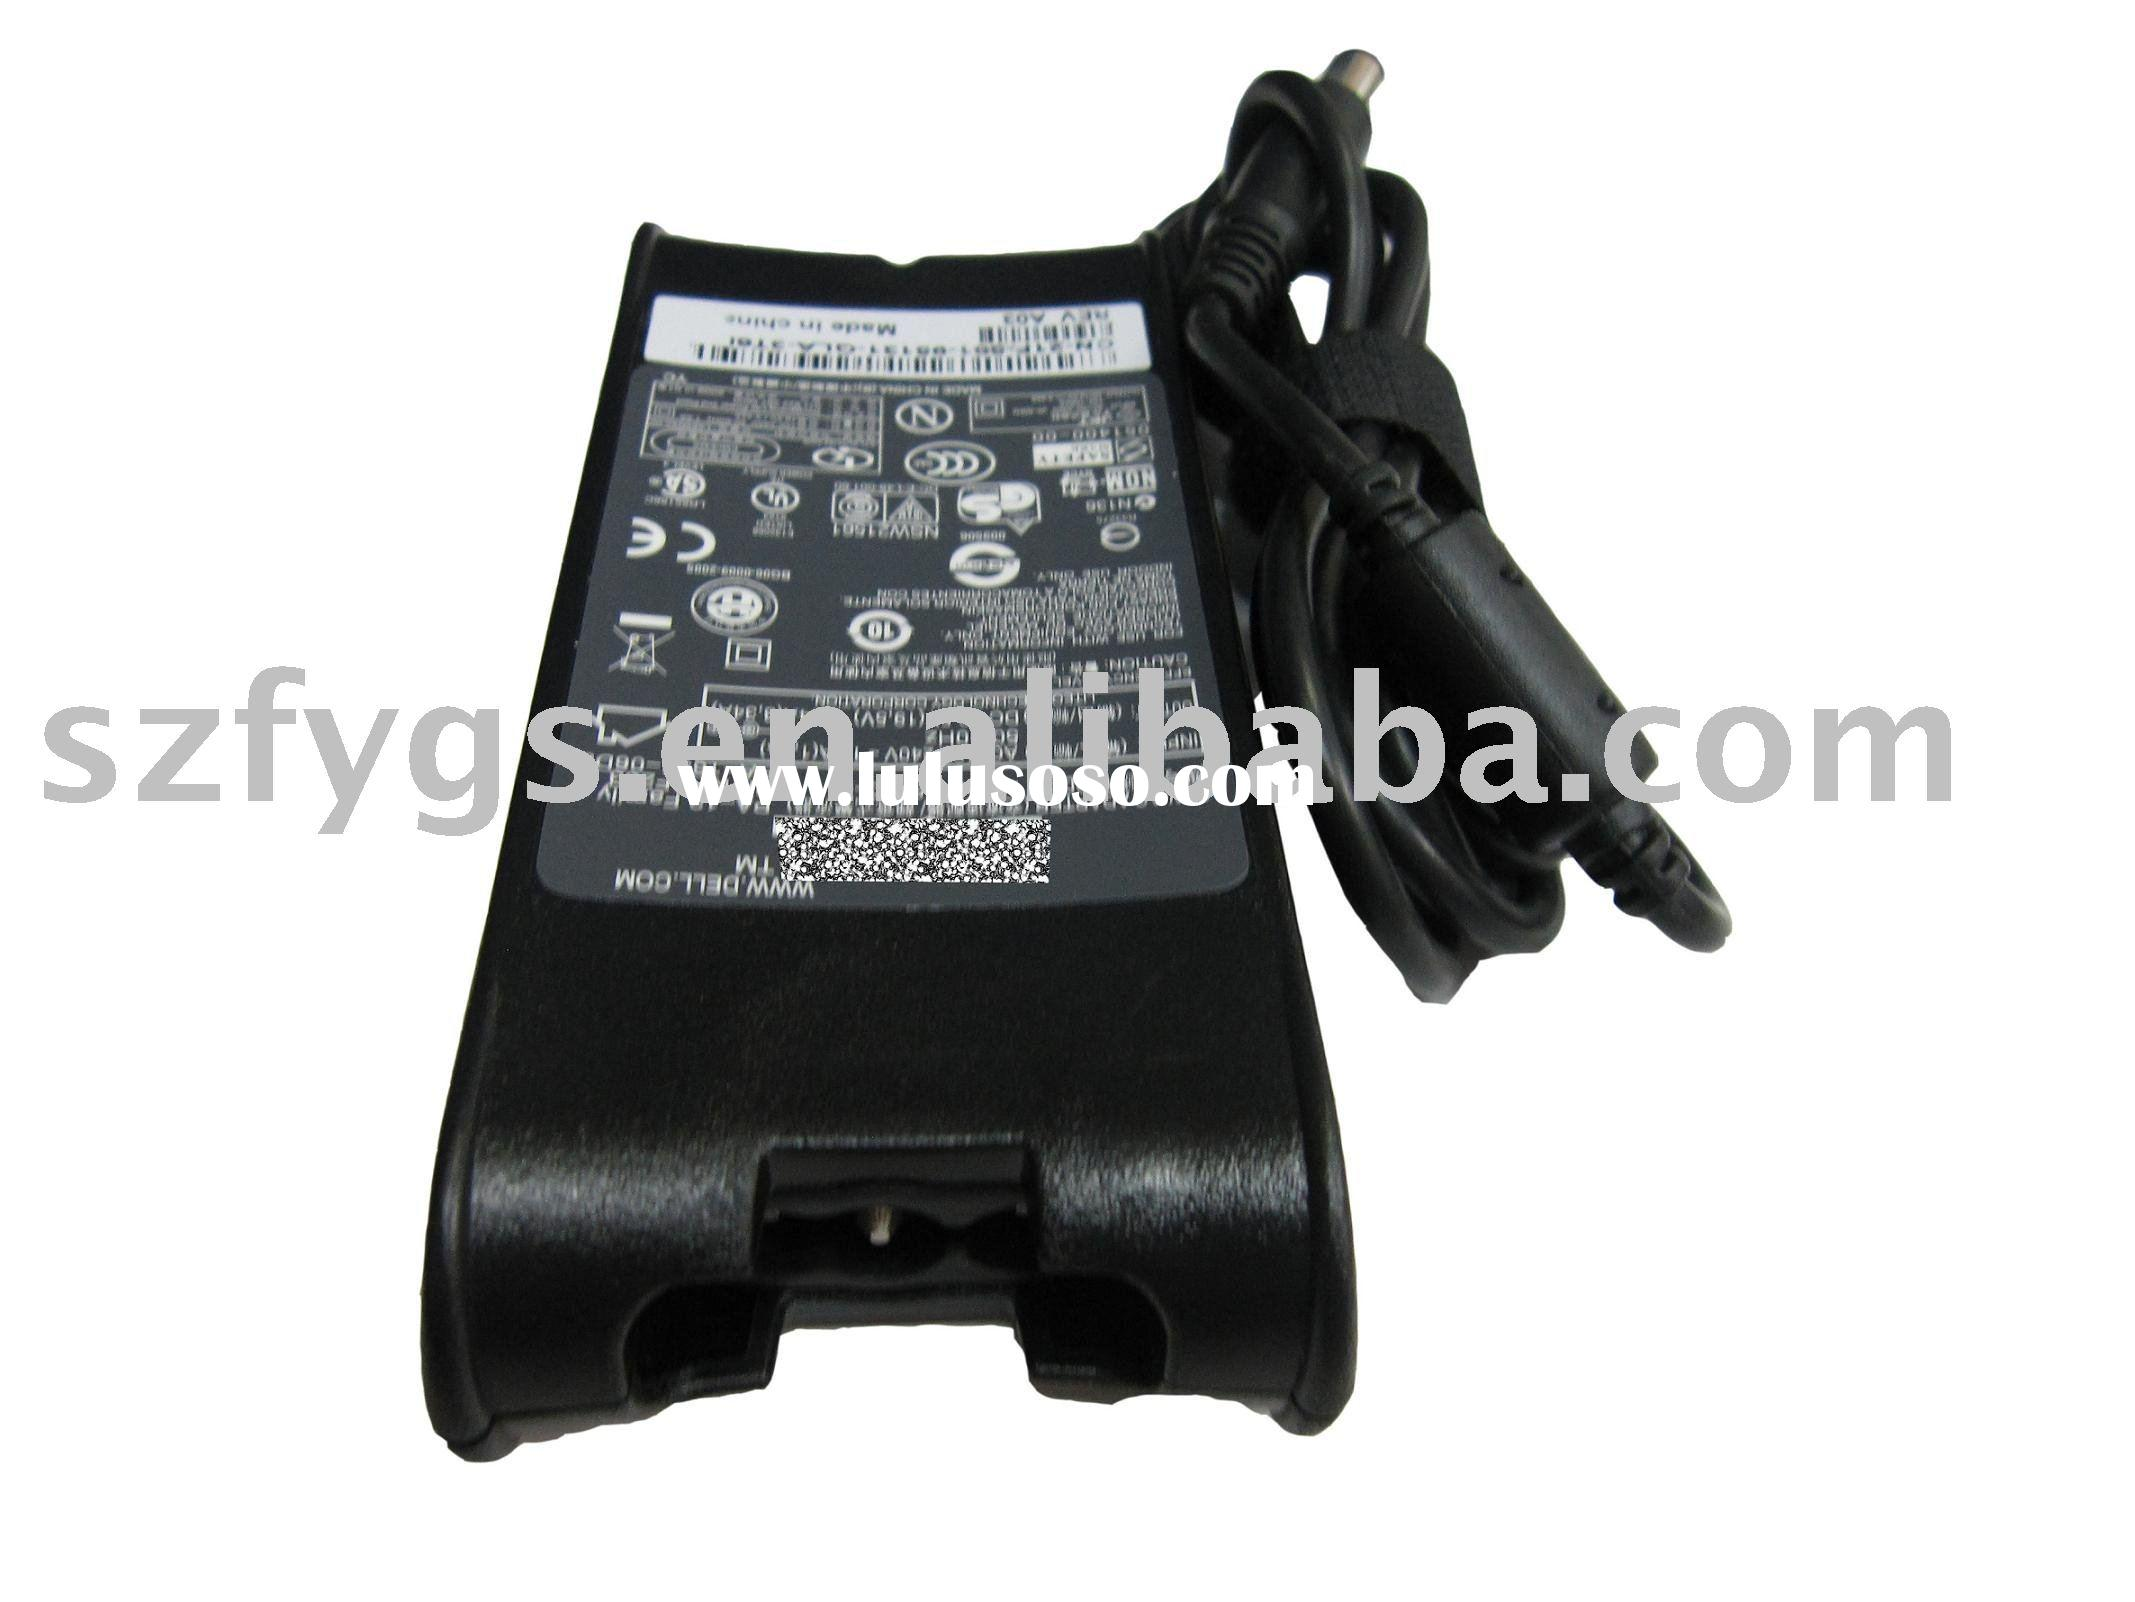 Laptop Power Adapter for DELL PA-12 19.5V 3.34A